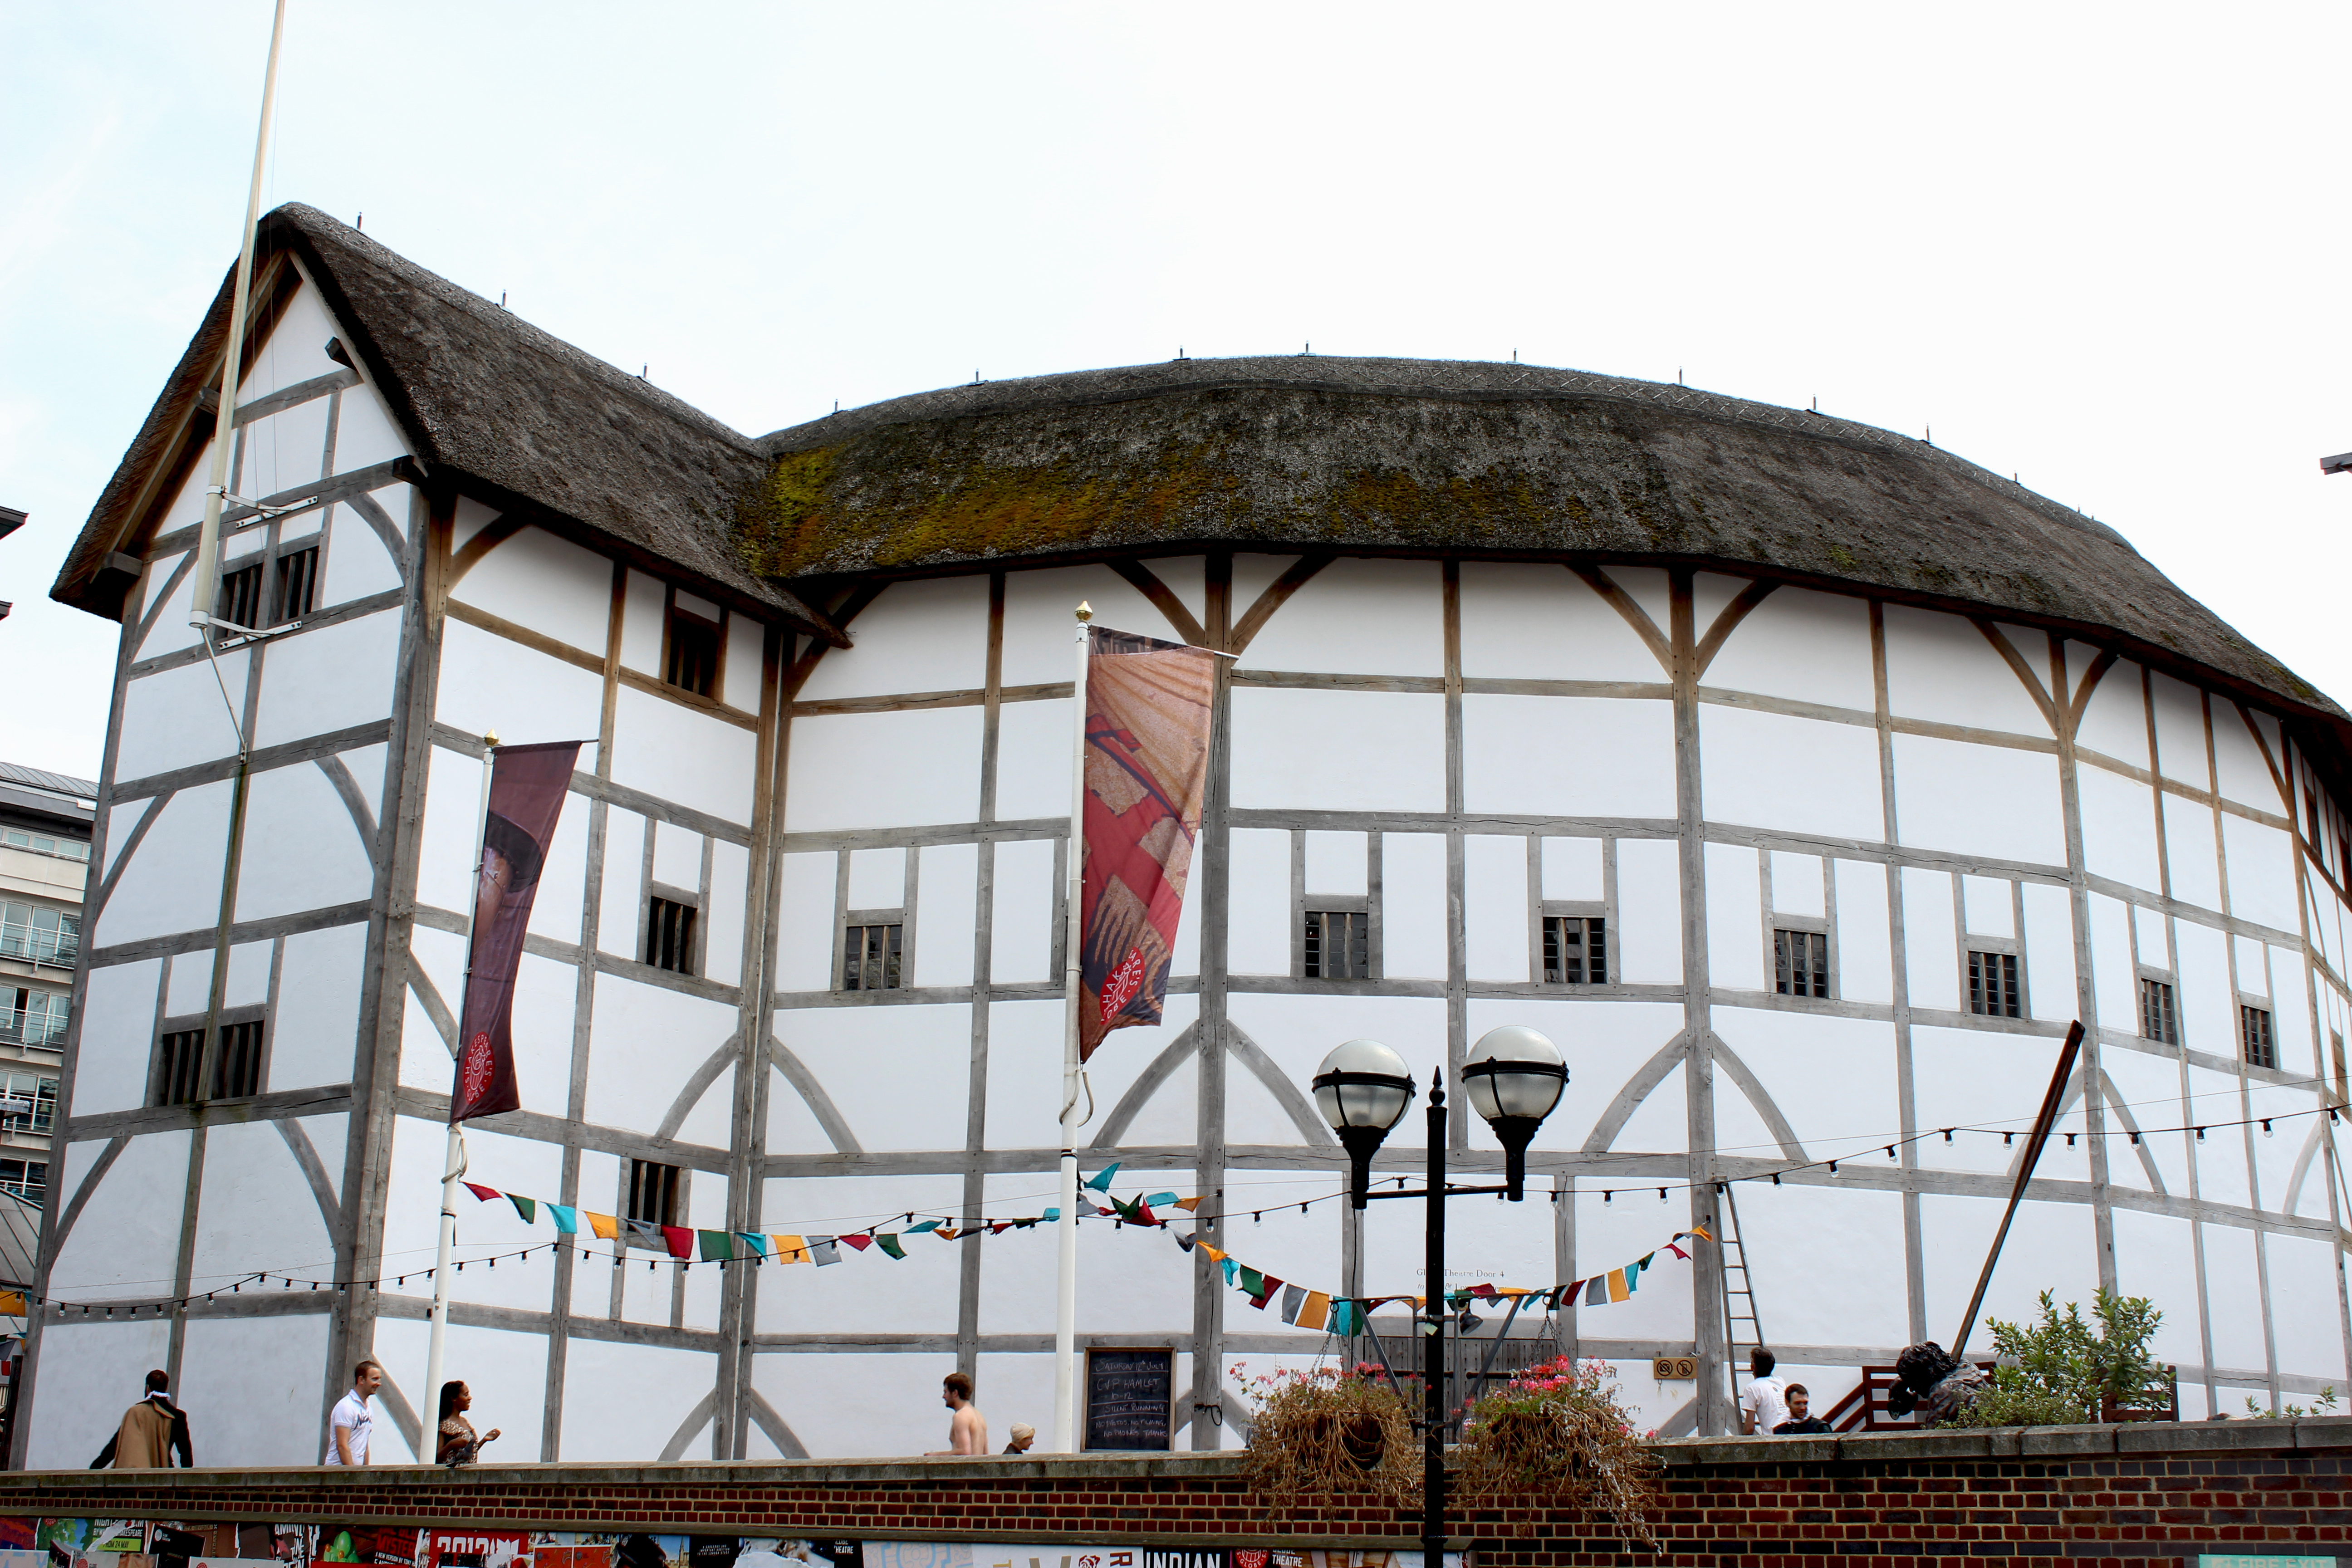 Shakespeare S Globe Theatre All The World S A Stage 1